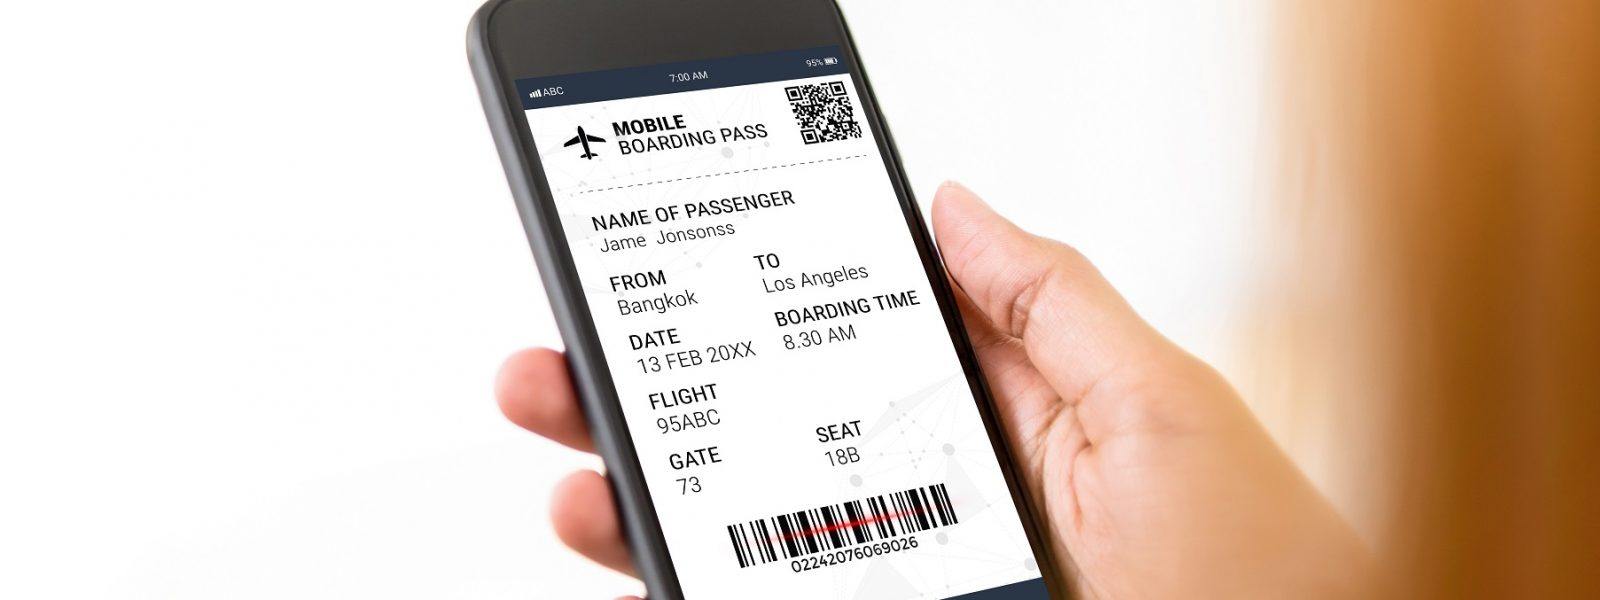 Passenger holding smartphone checking travel information on electronic boarding pass before flying